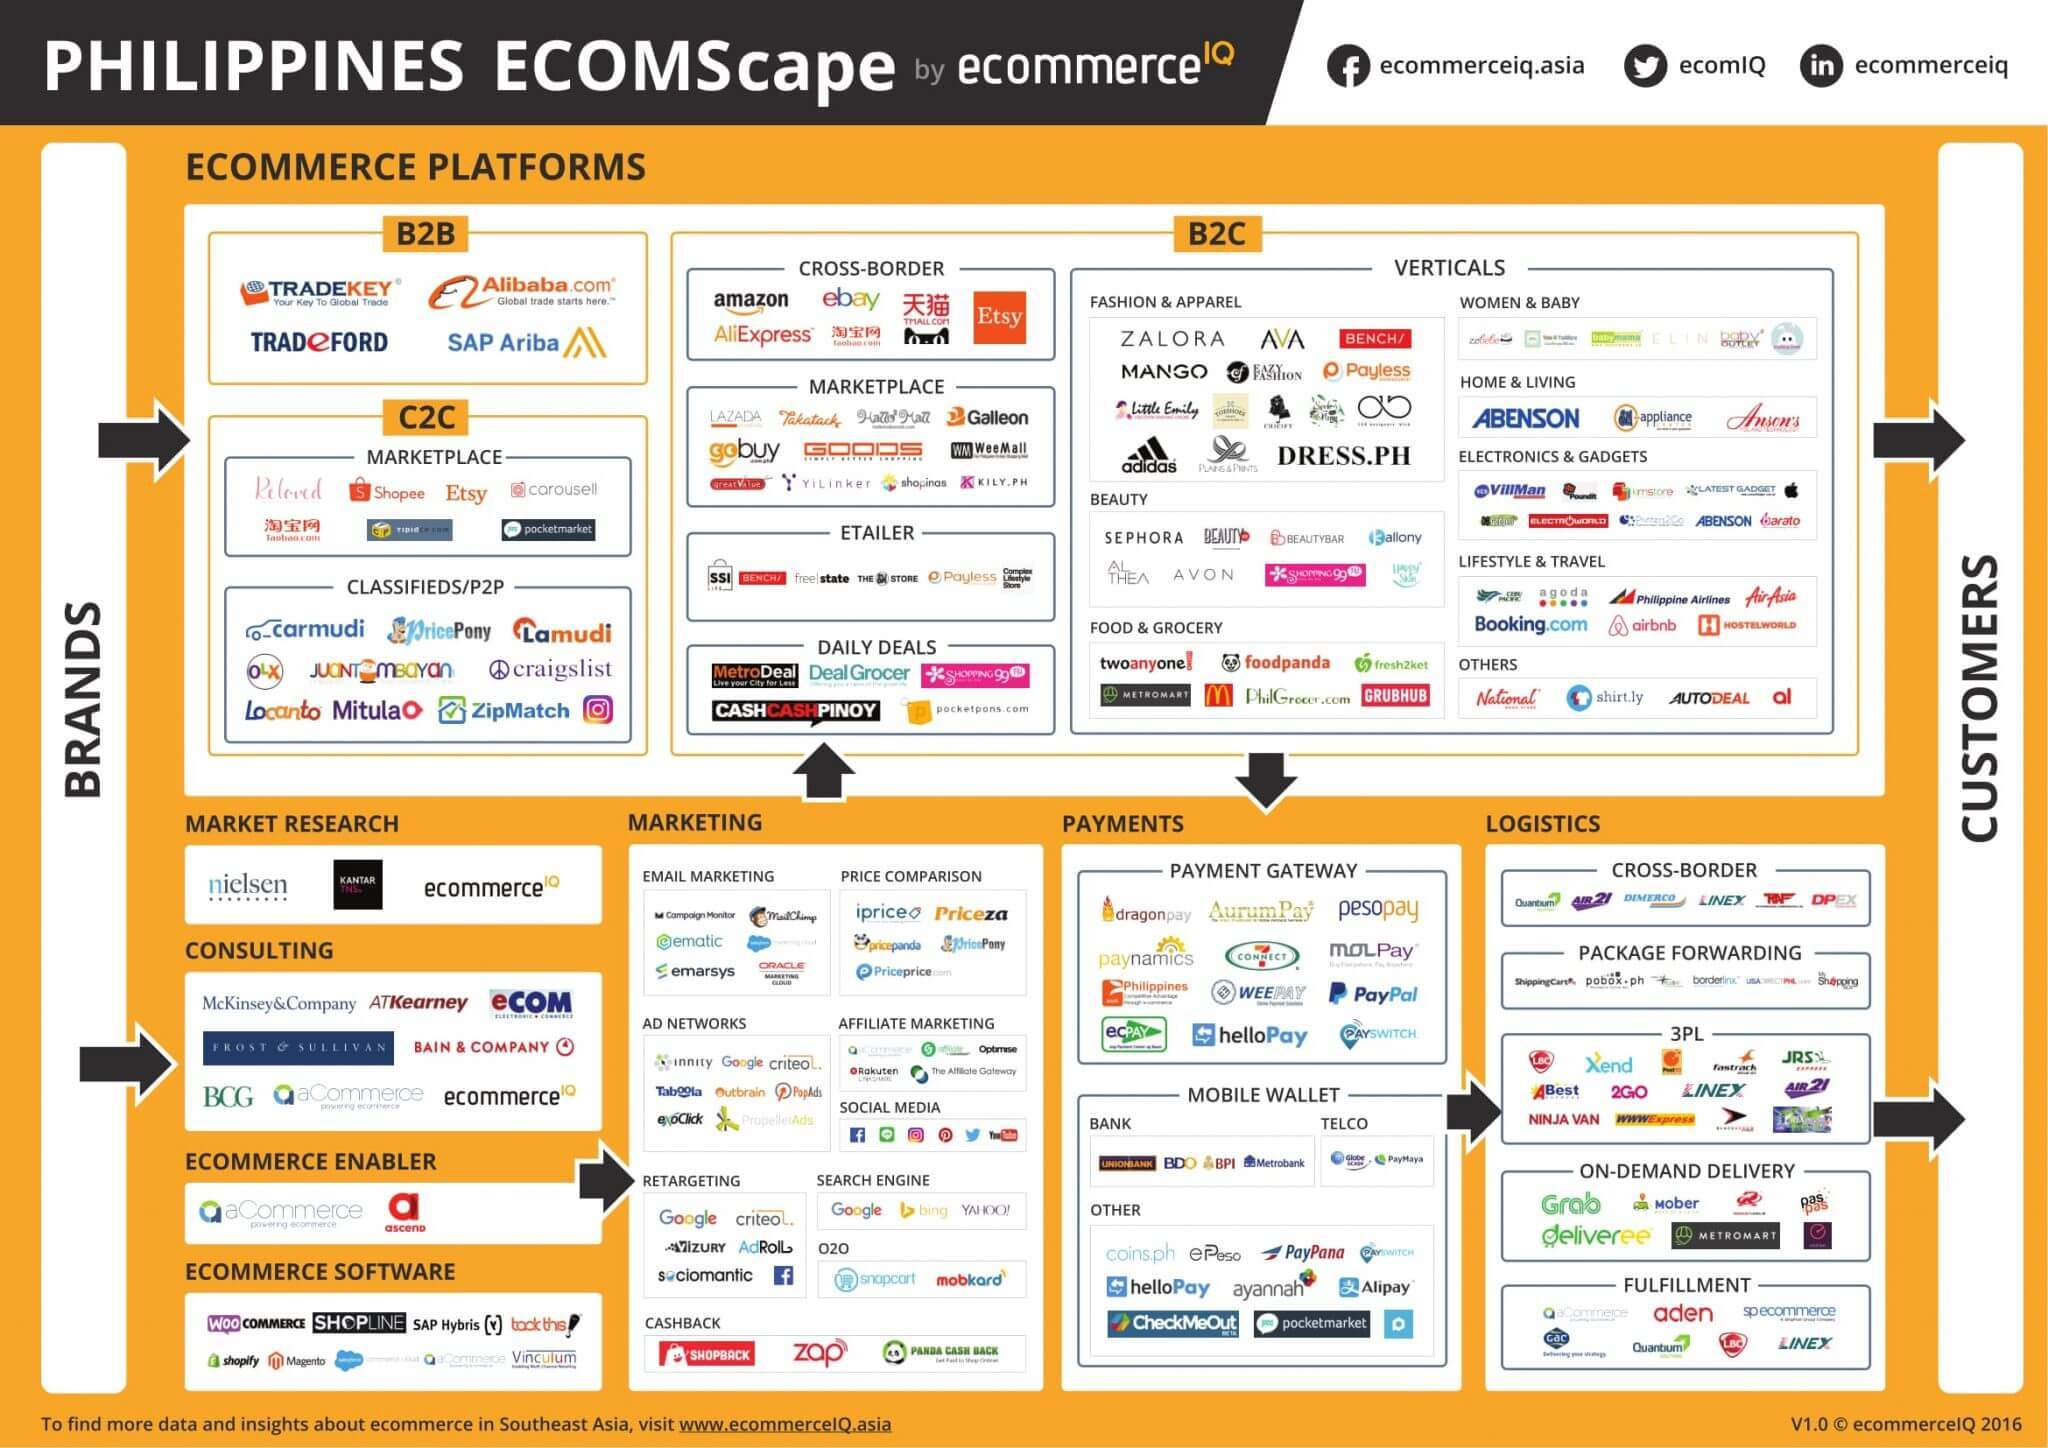 Insights and trends of e-commerce in the Philippines [market